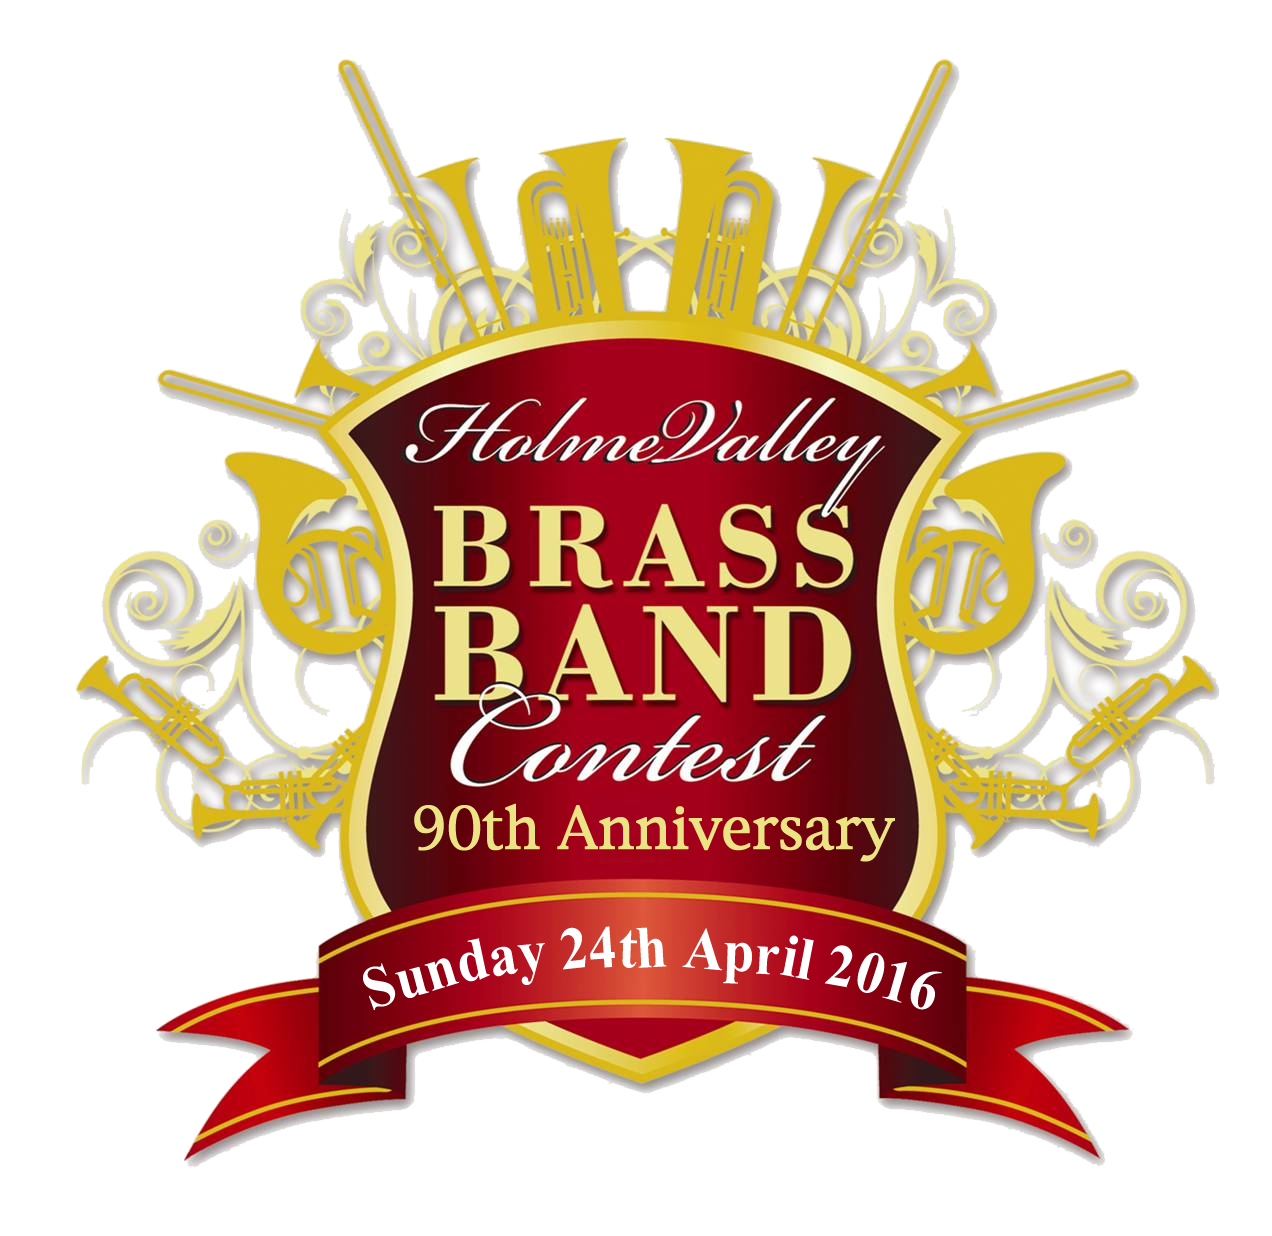 Holme Valley Brass Band Contest